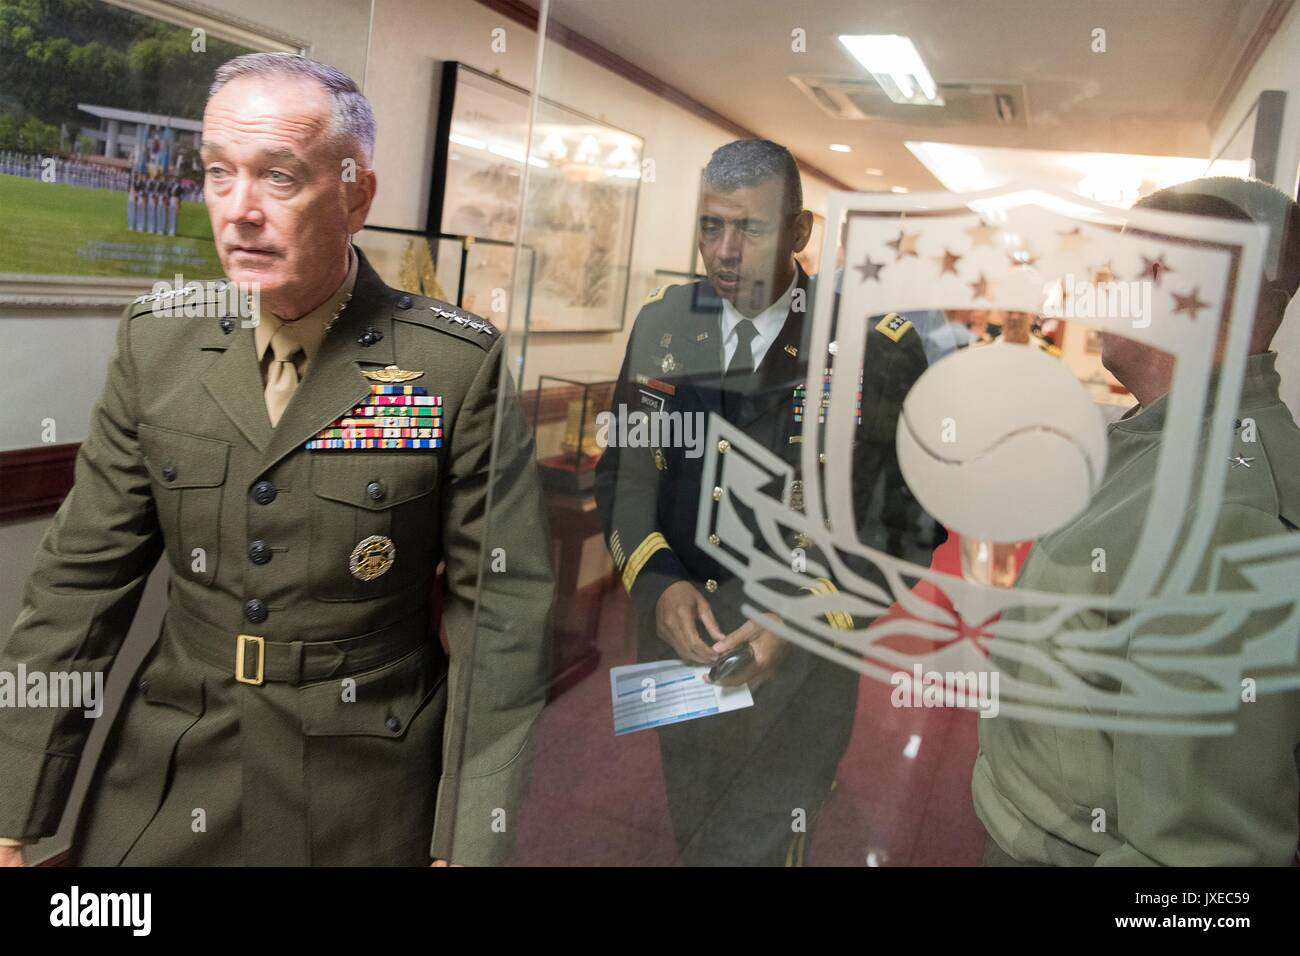 U.S. Chairman of the Joint Chiefs Gen. Joseph Dunford, left, and Army Gen. Vincent Brooks, commander, U.S. Forces Korea, following a press conference at Combined Forces Command August 14, 2017 in Seoul, South Korea. Dunford is meeting military leaders in the Asia-Pacific region as tensions rise with North Korea over nuclear and ballistic missiles tests. - Stock Image